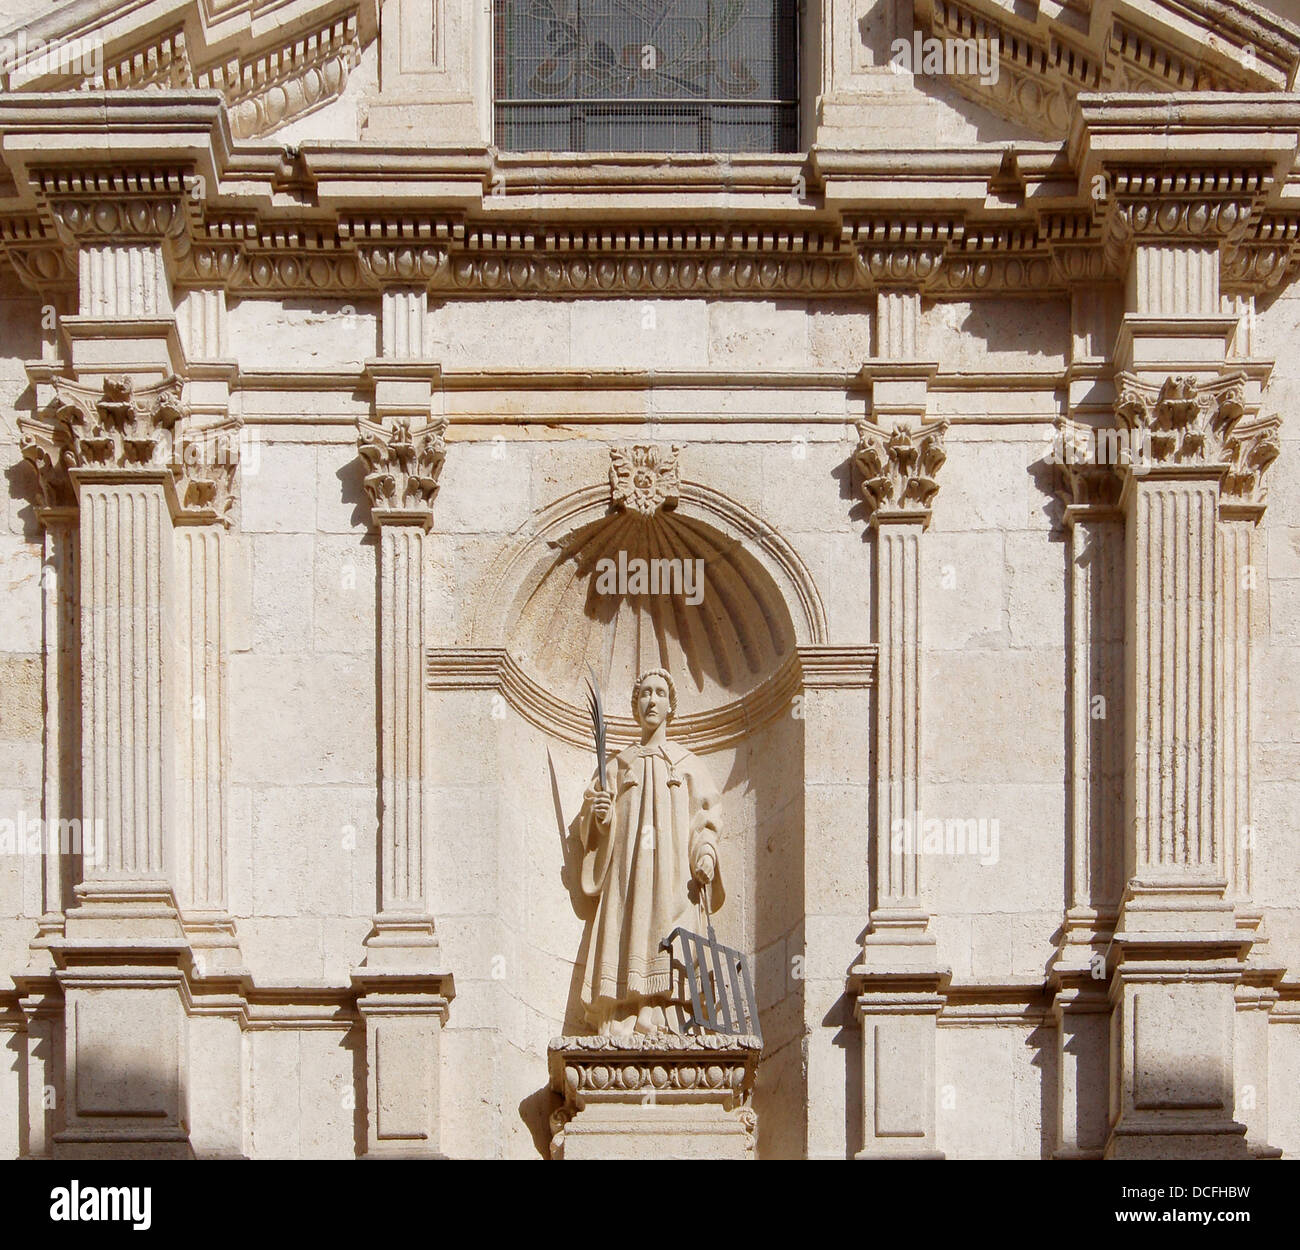 partial view of the baroque façade of church San Lorenzo in Burgos, Spain, with the statue of the saint. - Stock Image